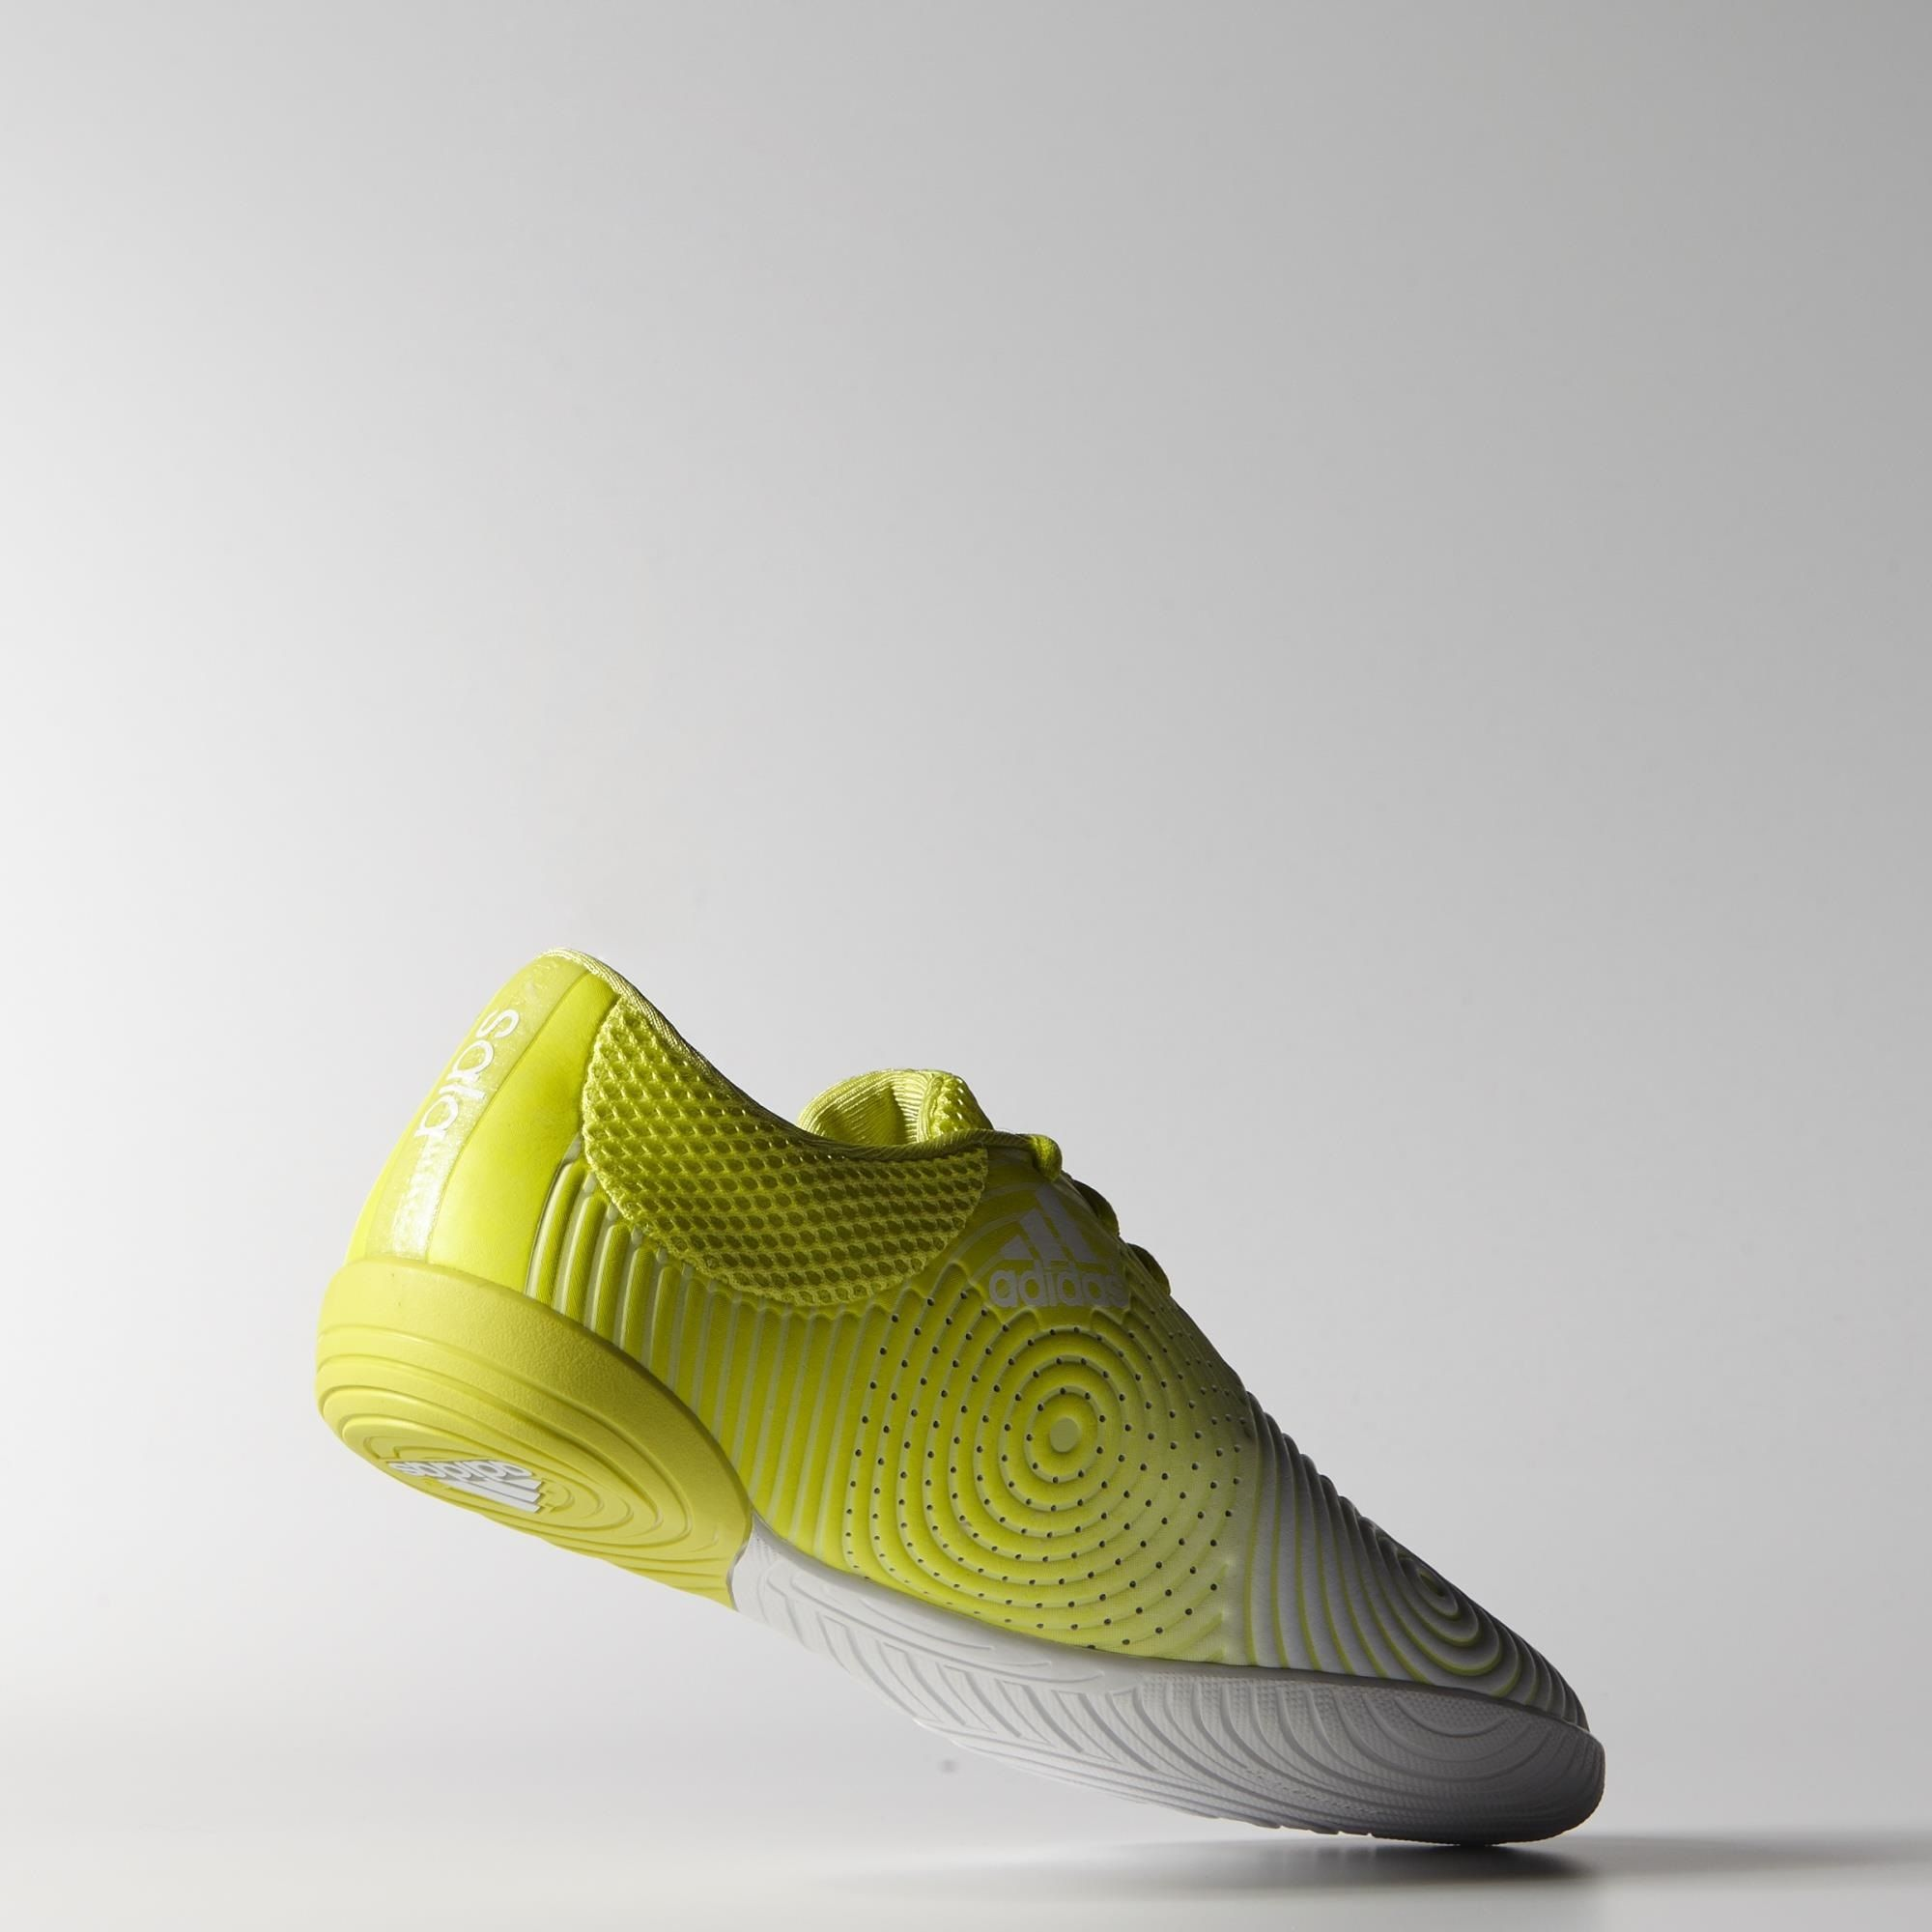 c2d8e87a11f ... Click to enlarge image adidas-freefootball-control-sala-shoes-glow- ...